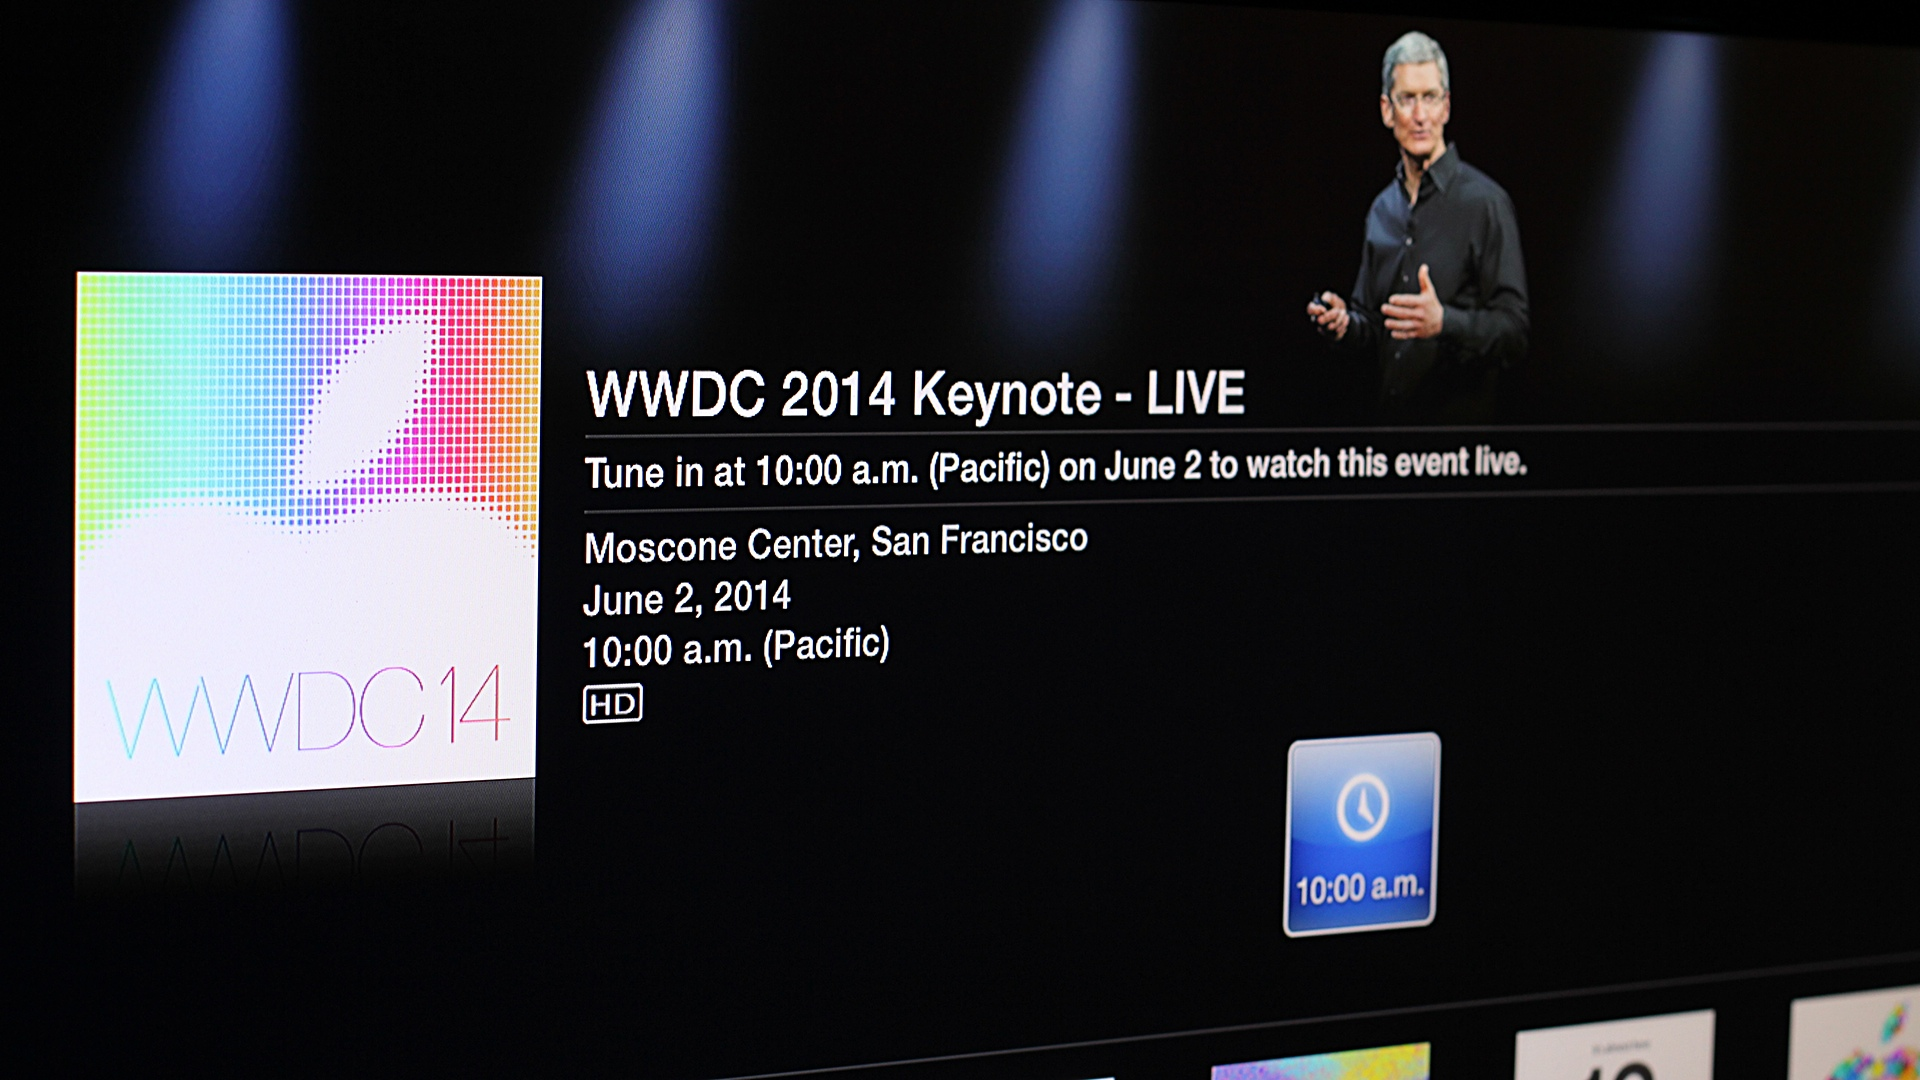 WWDC 2014 Keynote Live Apple TV